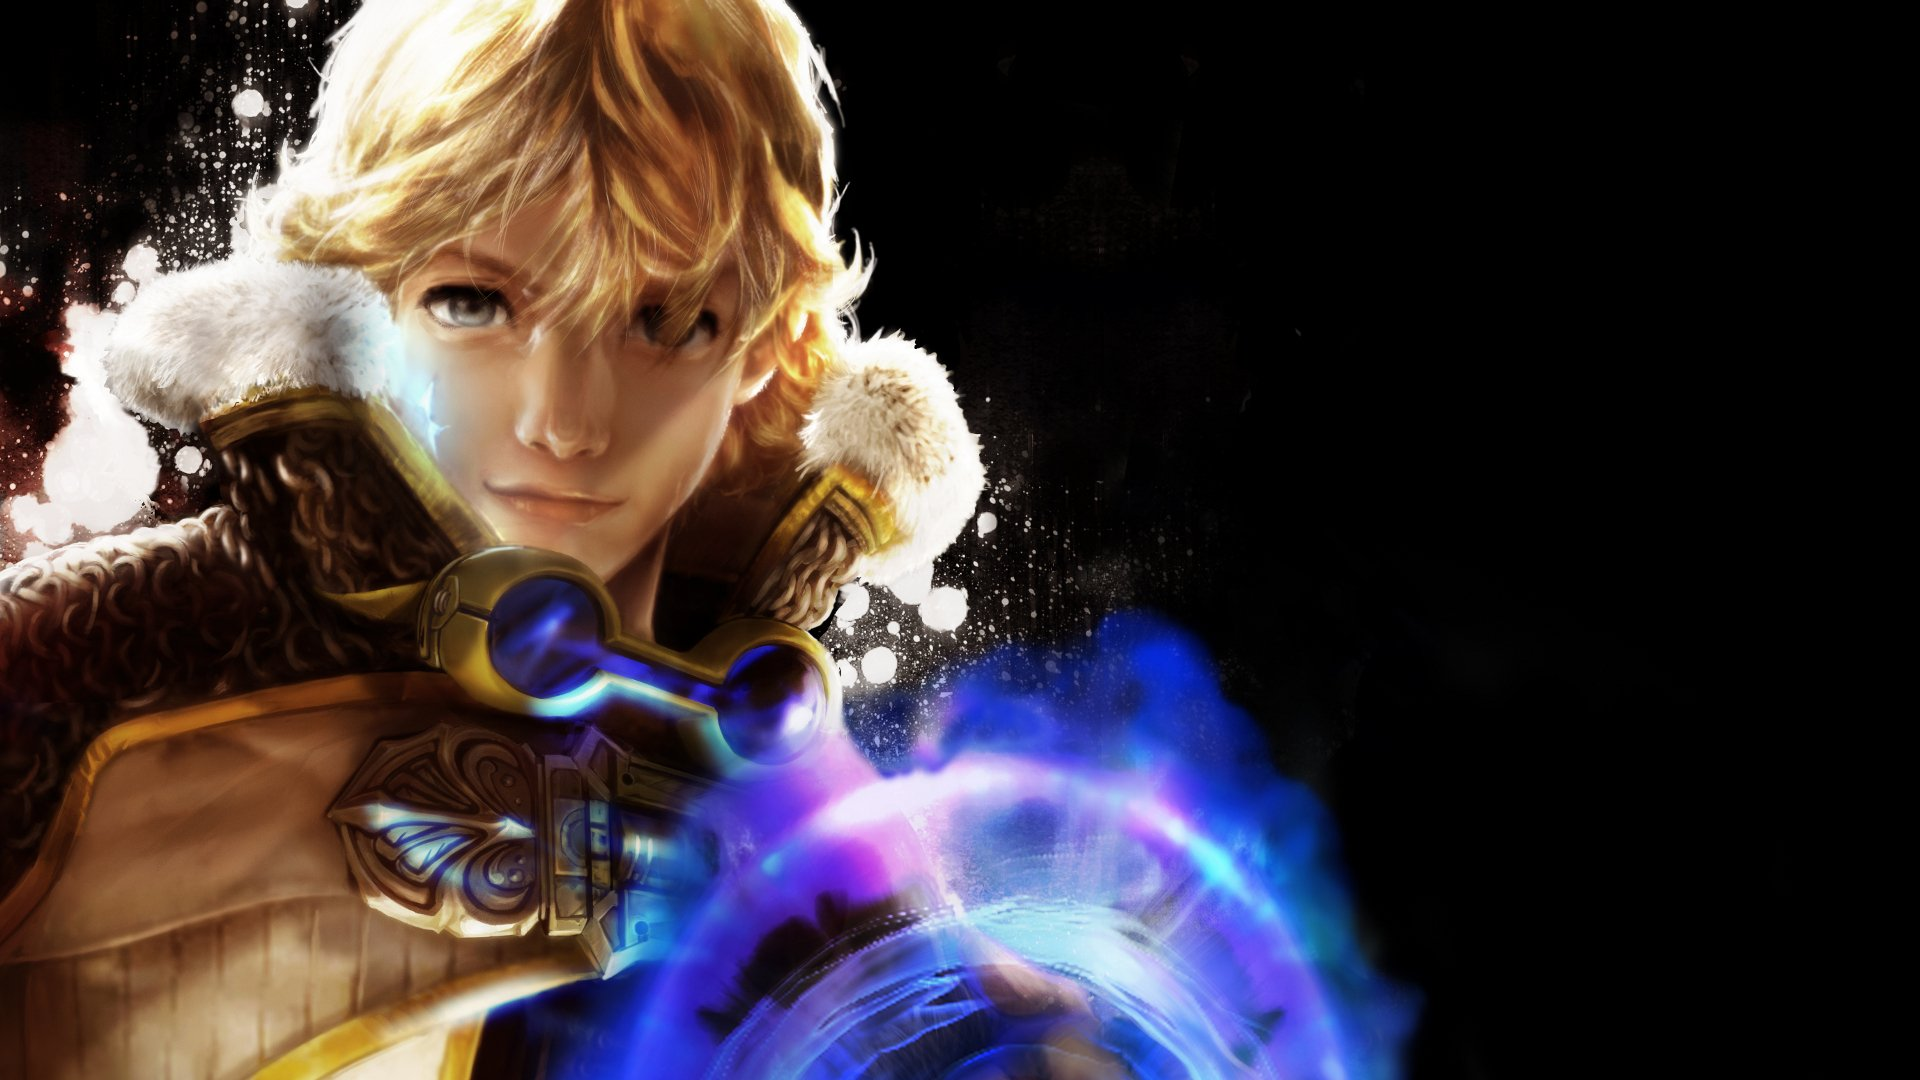 Final Fantasy Crystal Chronicles The Crystal Bearers Hd Wallpaper